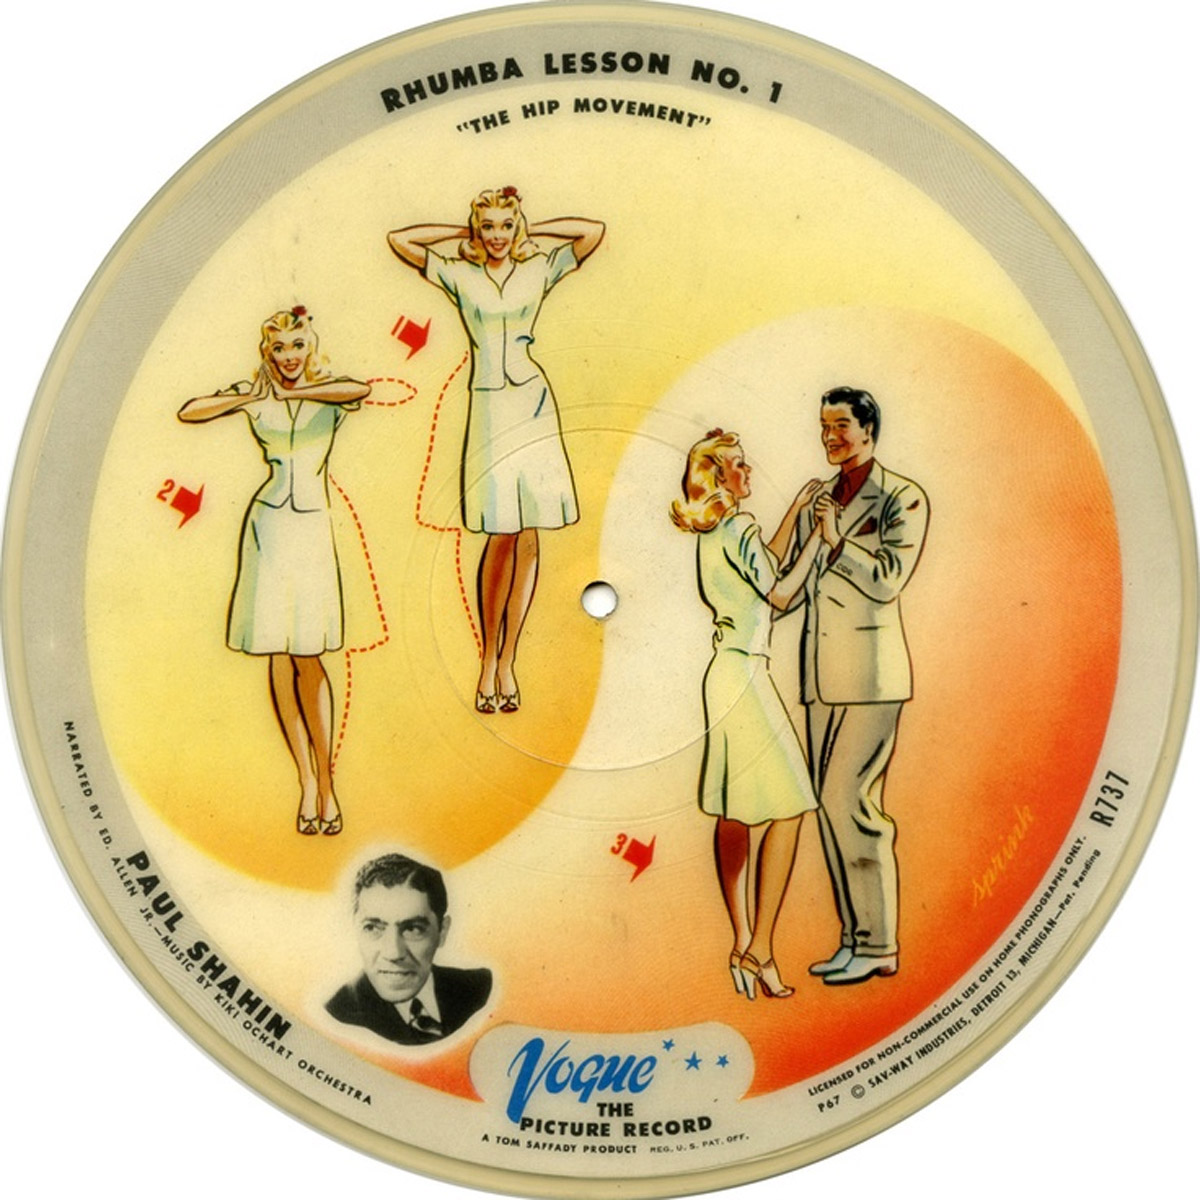 vogue picture disc Rare Records Rare Rock Jazz and R&B